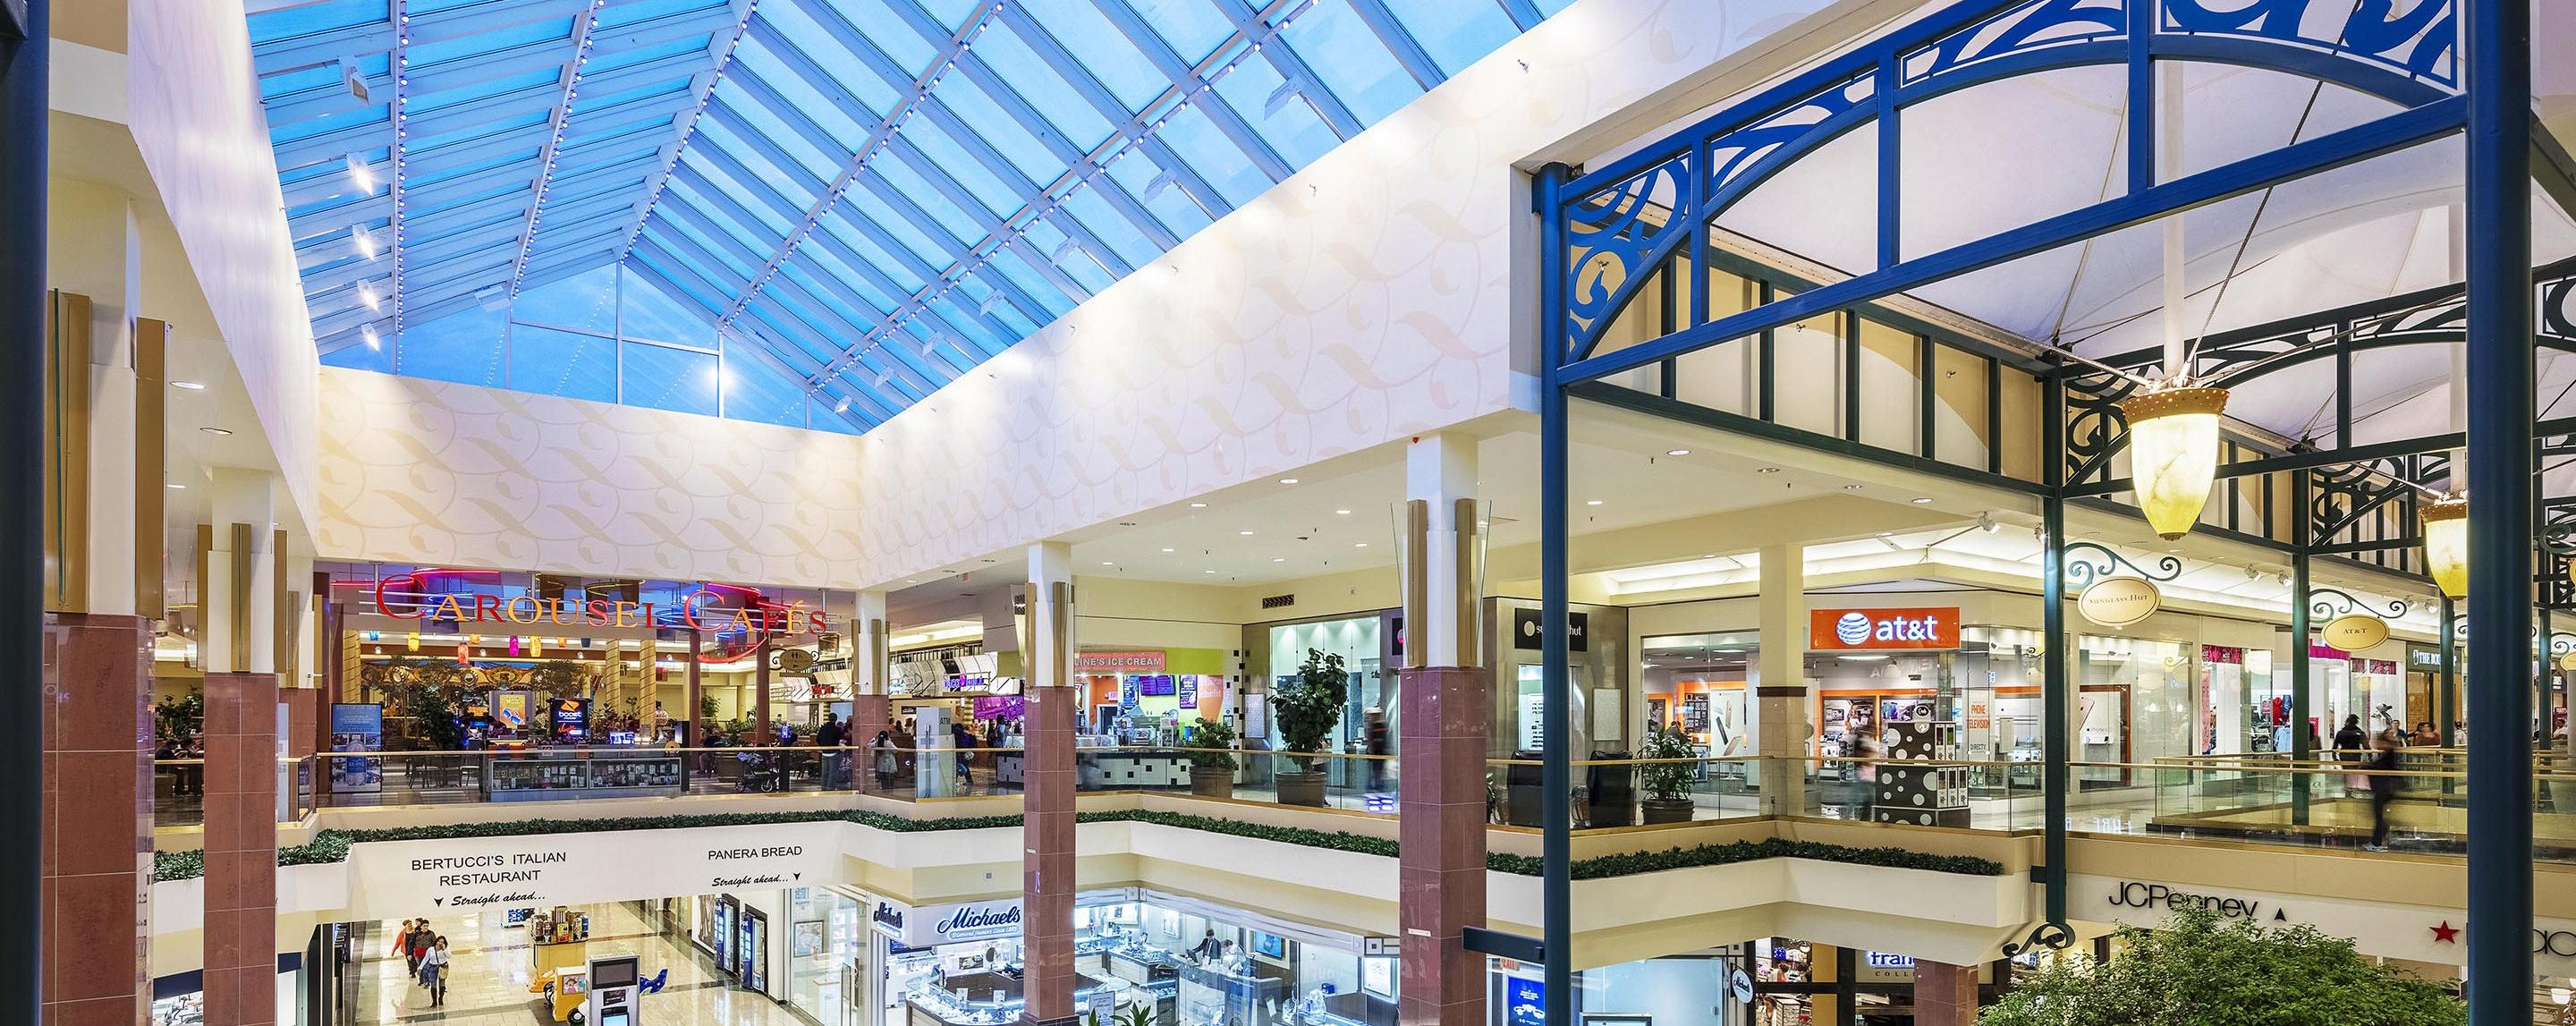 Inside the Shoppes at Buckland Hills atrium, light shines through the sky roof onto the two levels of store fronts.